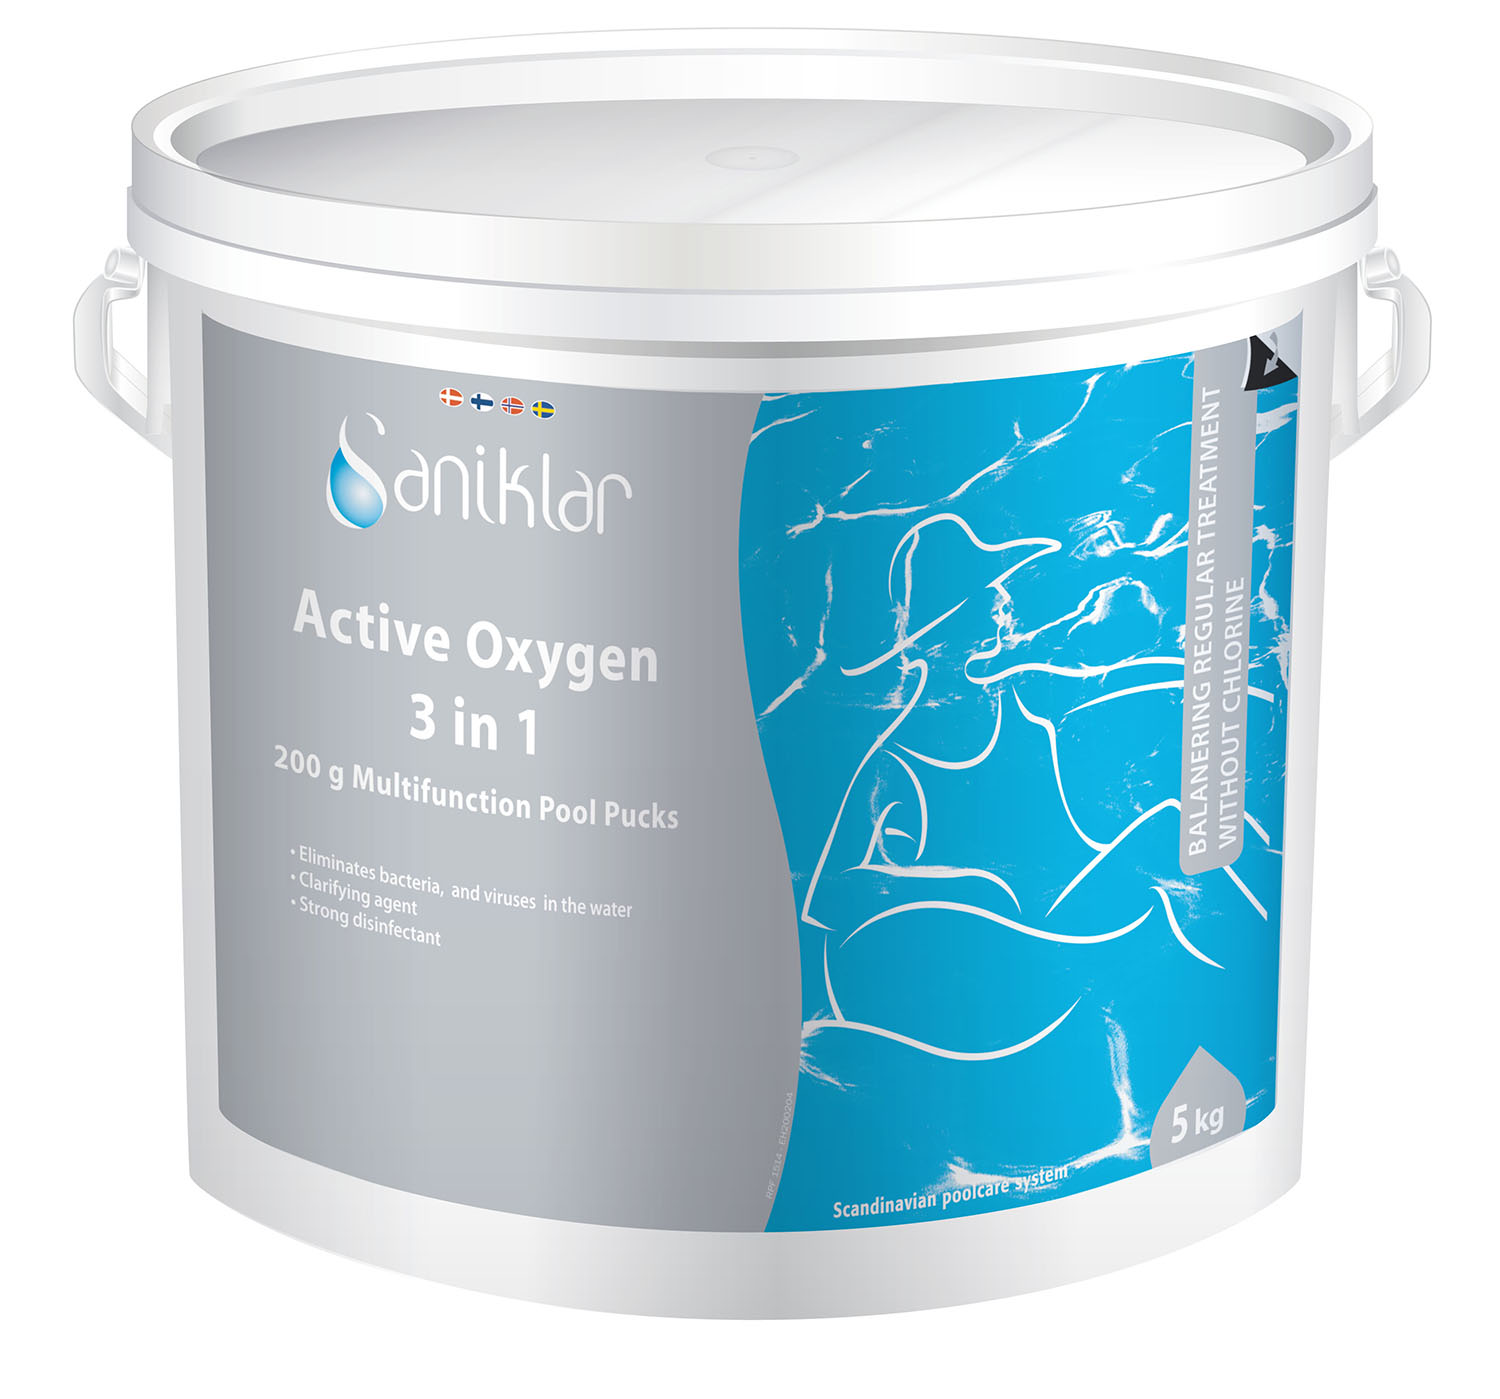 Saniklar Active Oxygen 3 in 1 – 200 grams tabletter